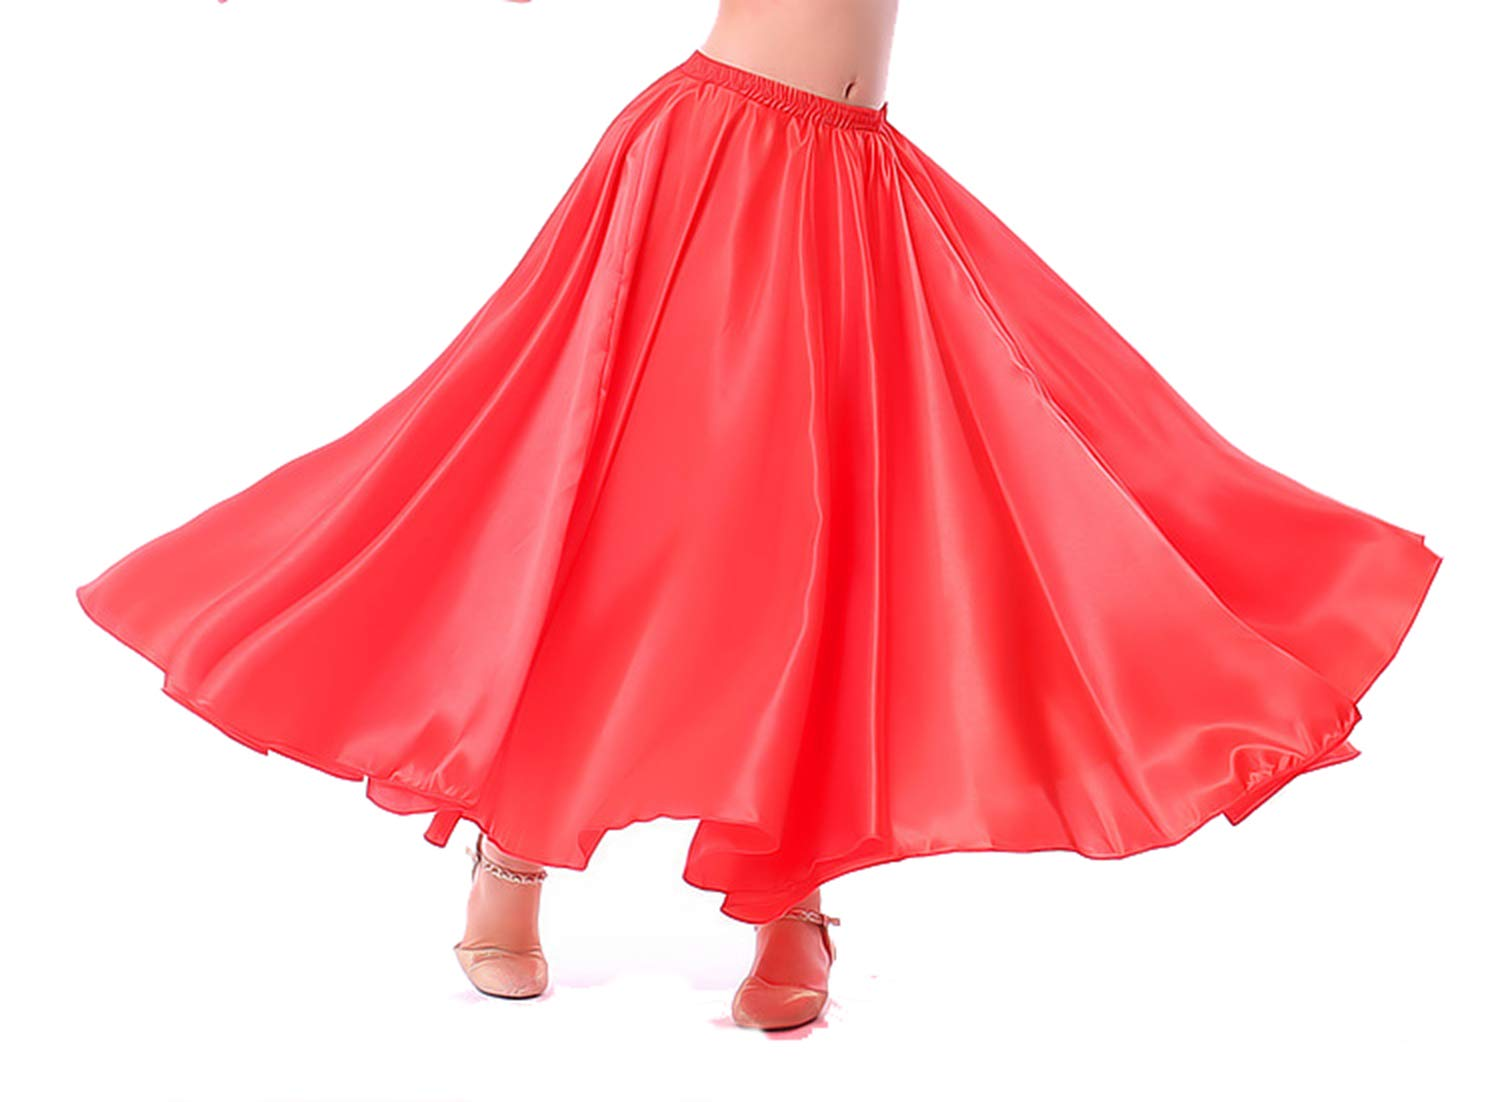 Lauthen.S Kids Gilrs Skirt for Belly Dance/Performance/Halloween Party, Satin Full Circle Tribal Skirt(Red,M) by Lauthen.S